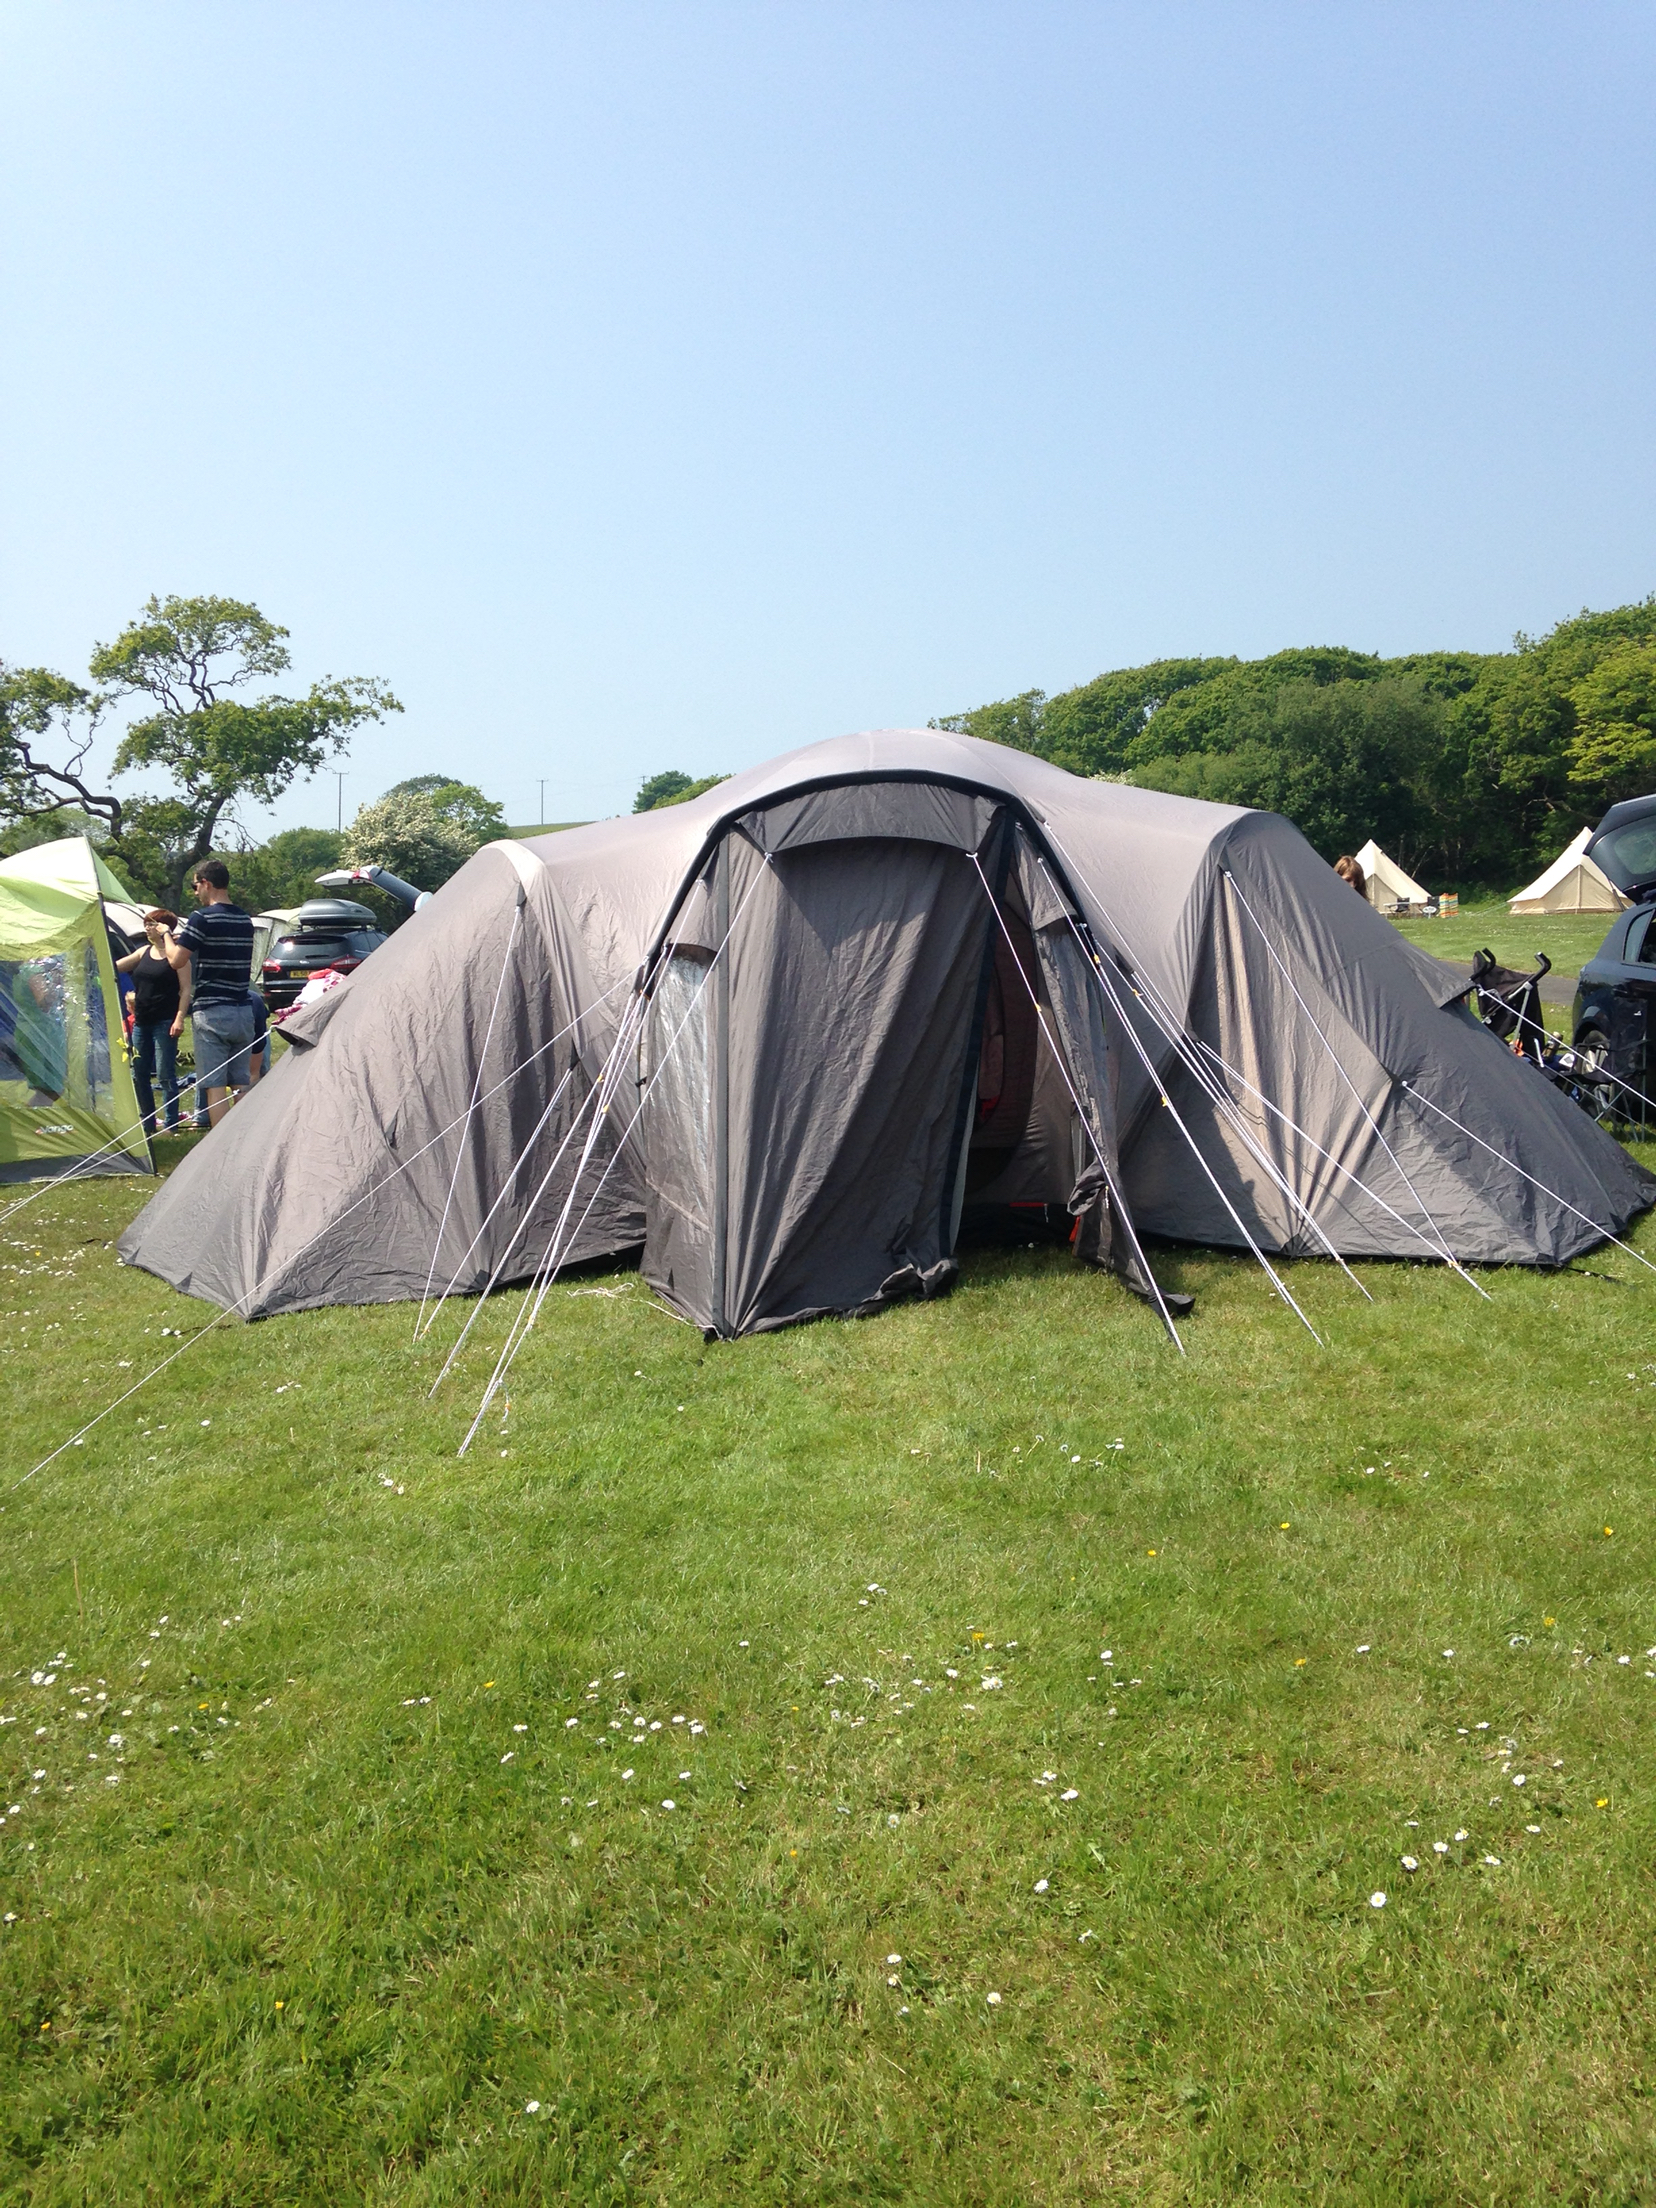 ... tent big space in middle standing height and 3 3man sleeping pods no rips or holes or leaks comes with storage bag  ground pegs poles Built in ground ... & 3 pod tents - Local Classifieds Buy and Sell in the UK and ...